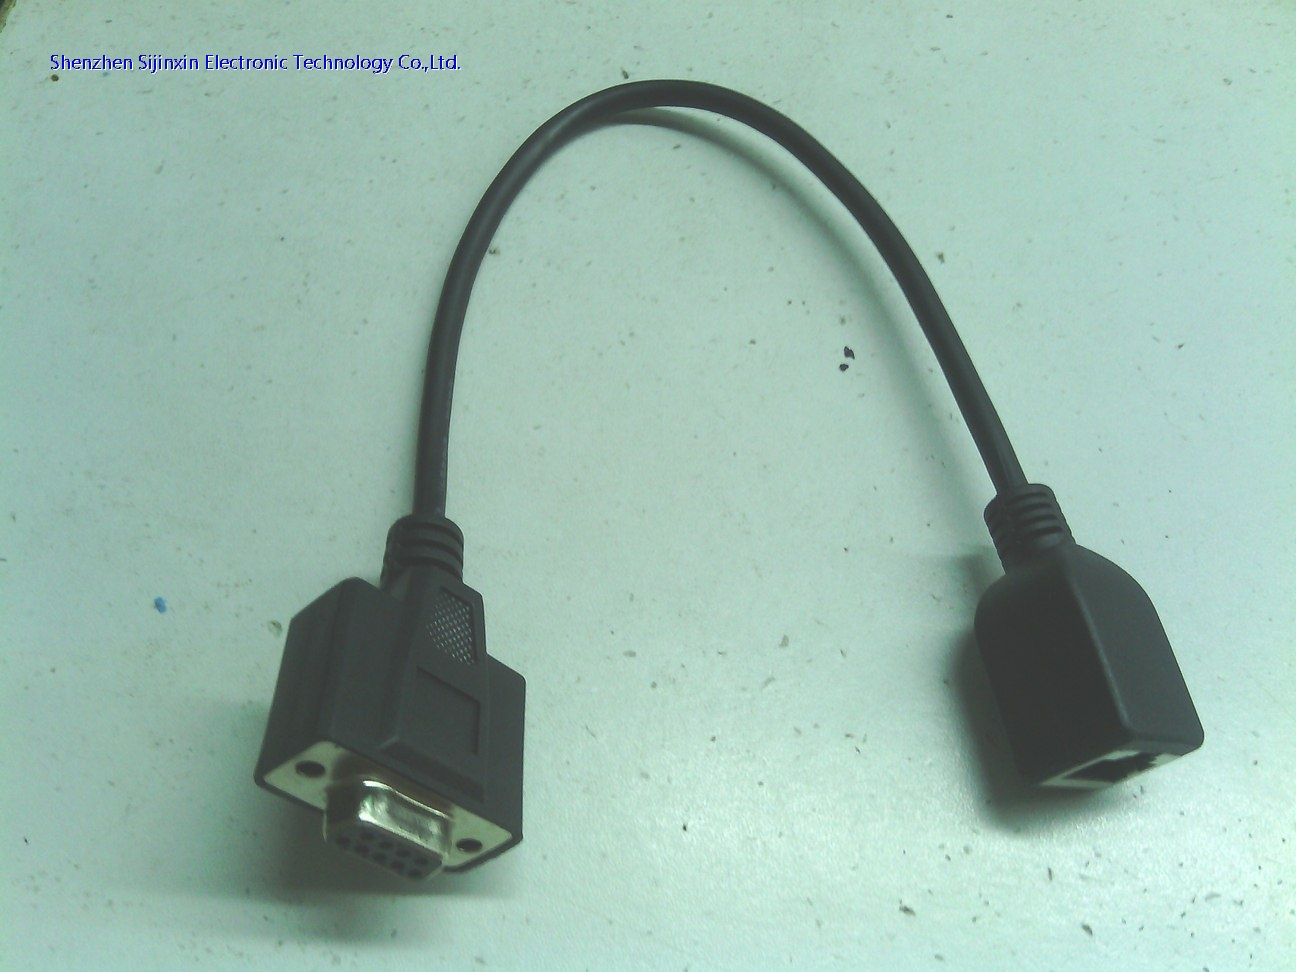 DB9 to RJ45 serial cable